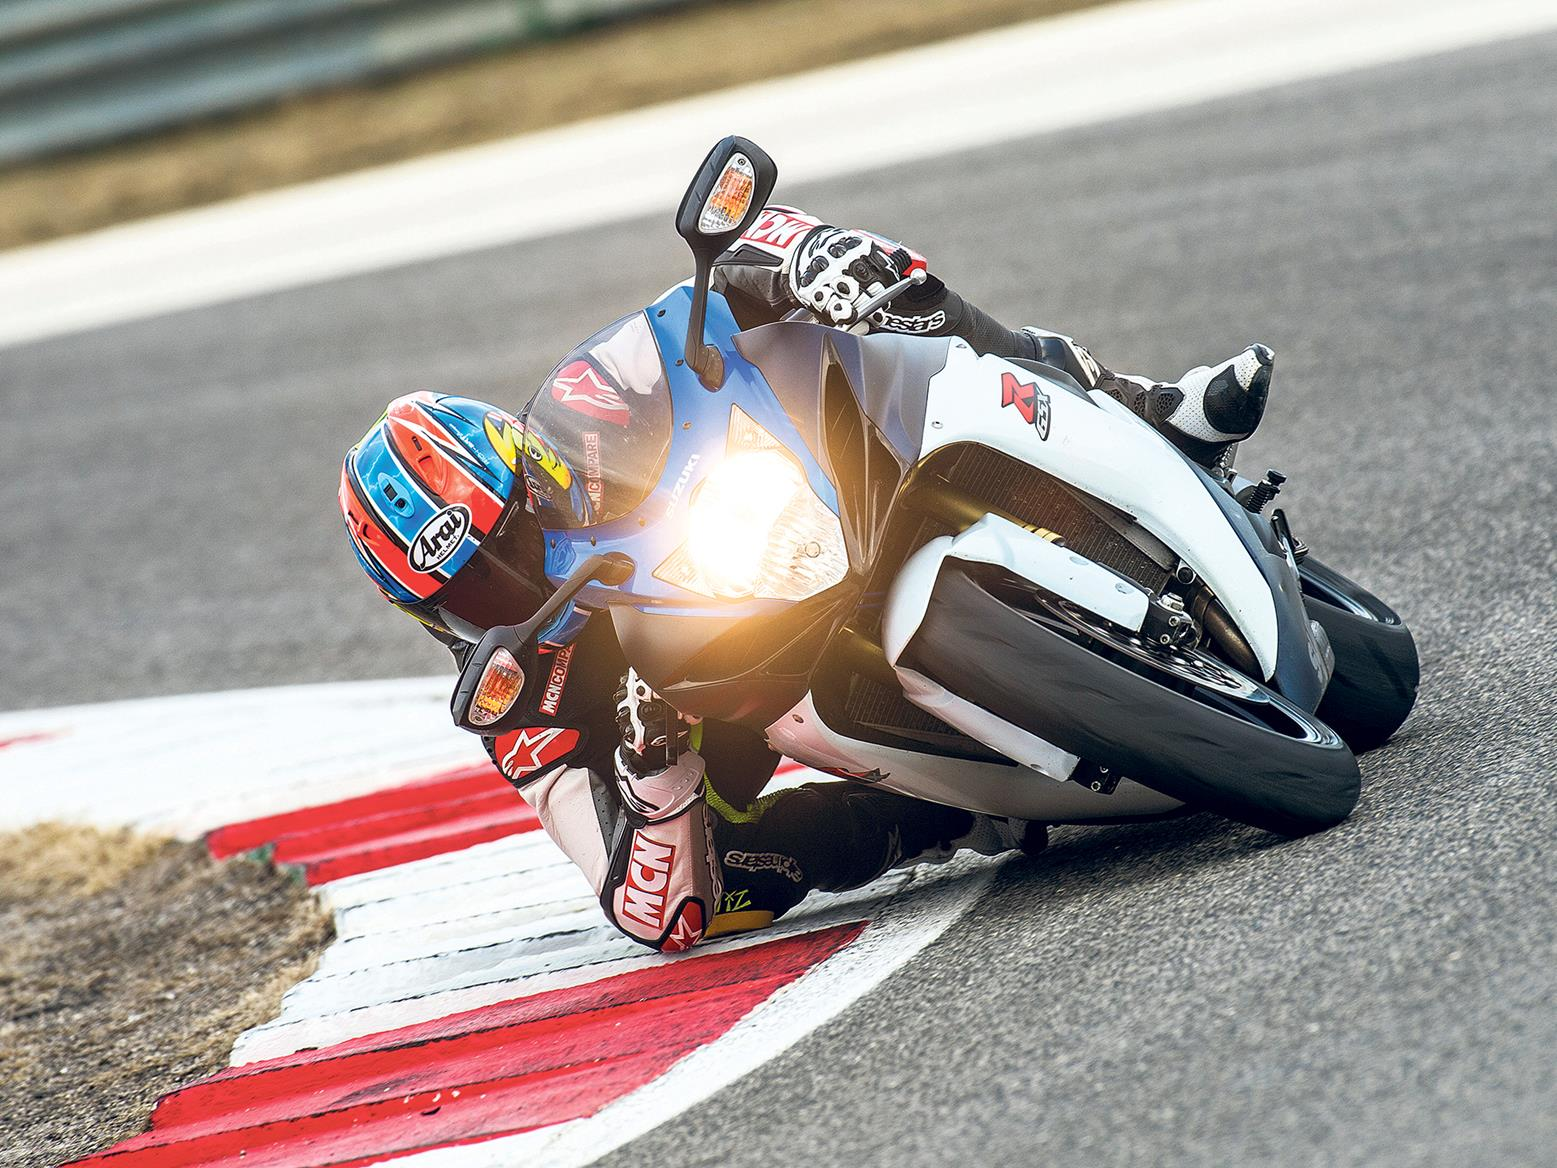 Suzuki GSX-R750 on track